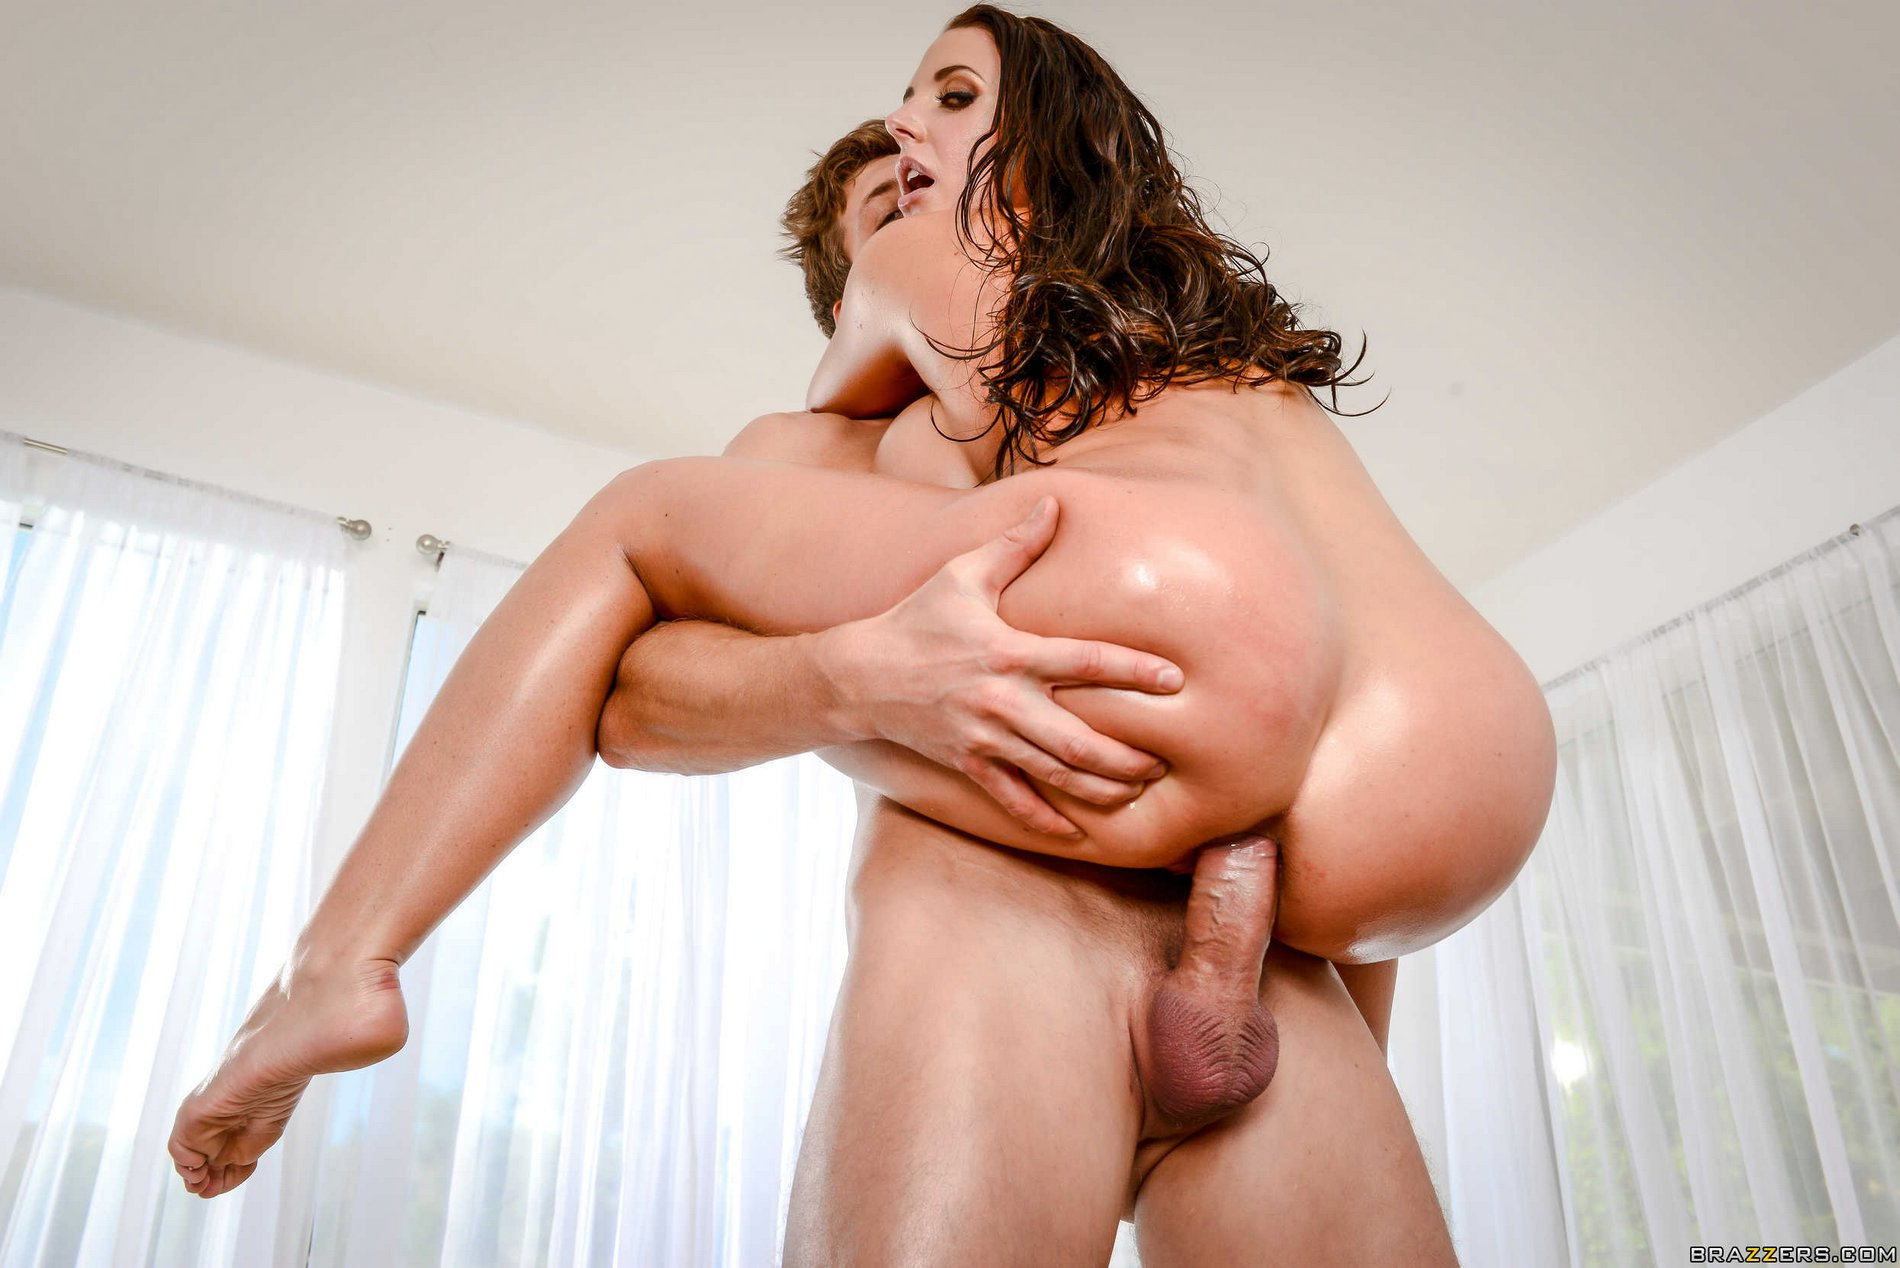 Angela white drilled by lover over kitchen counter 5